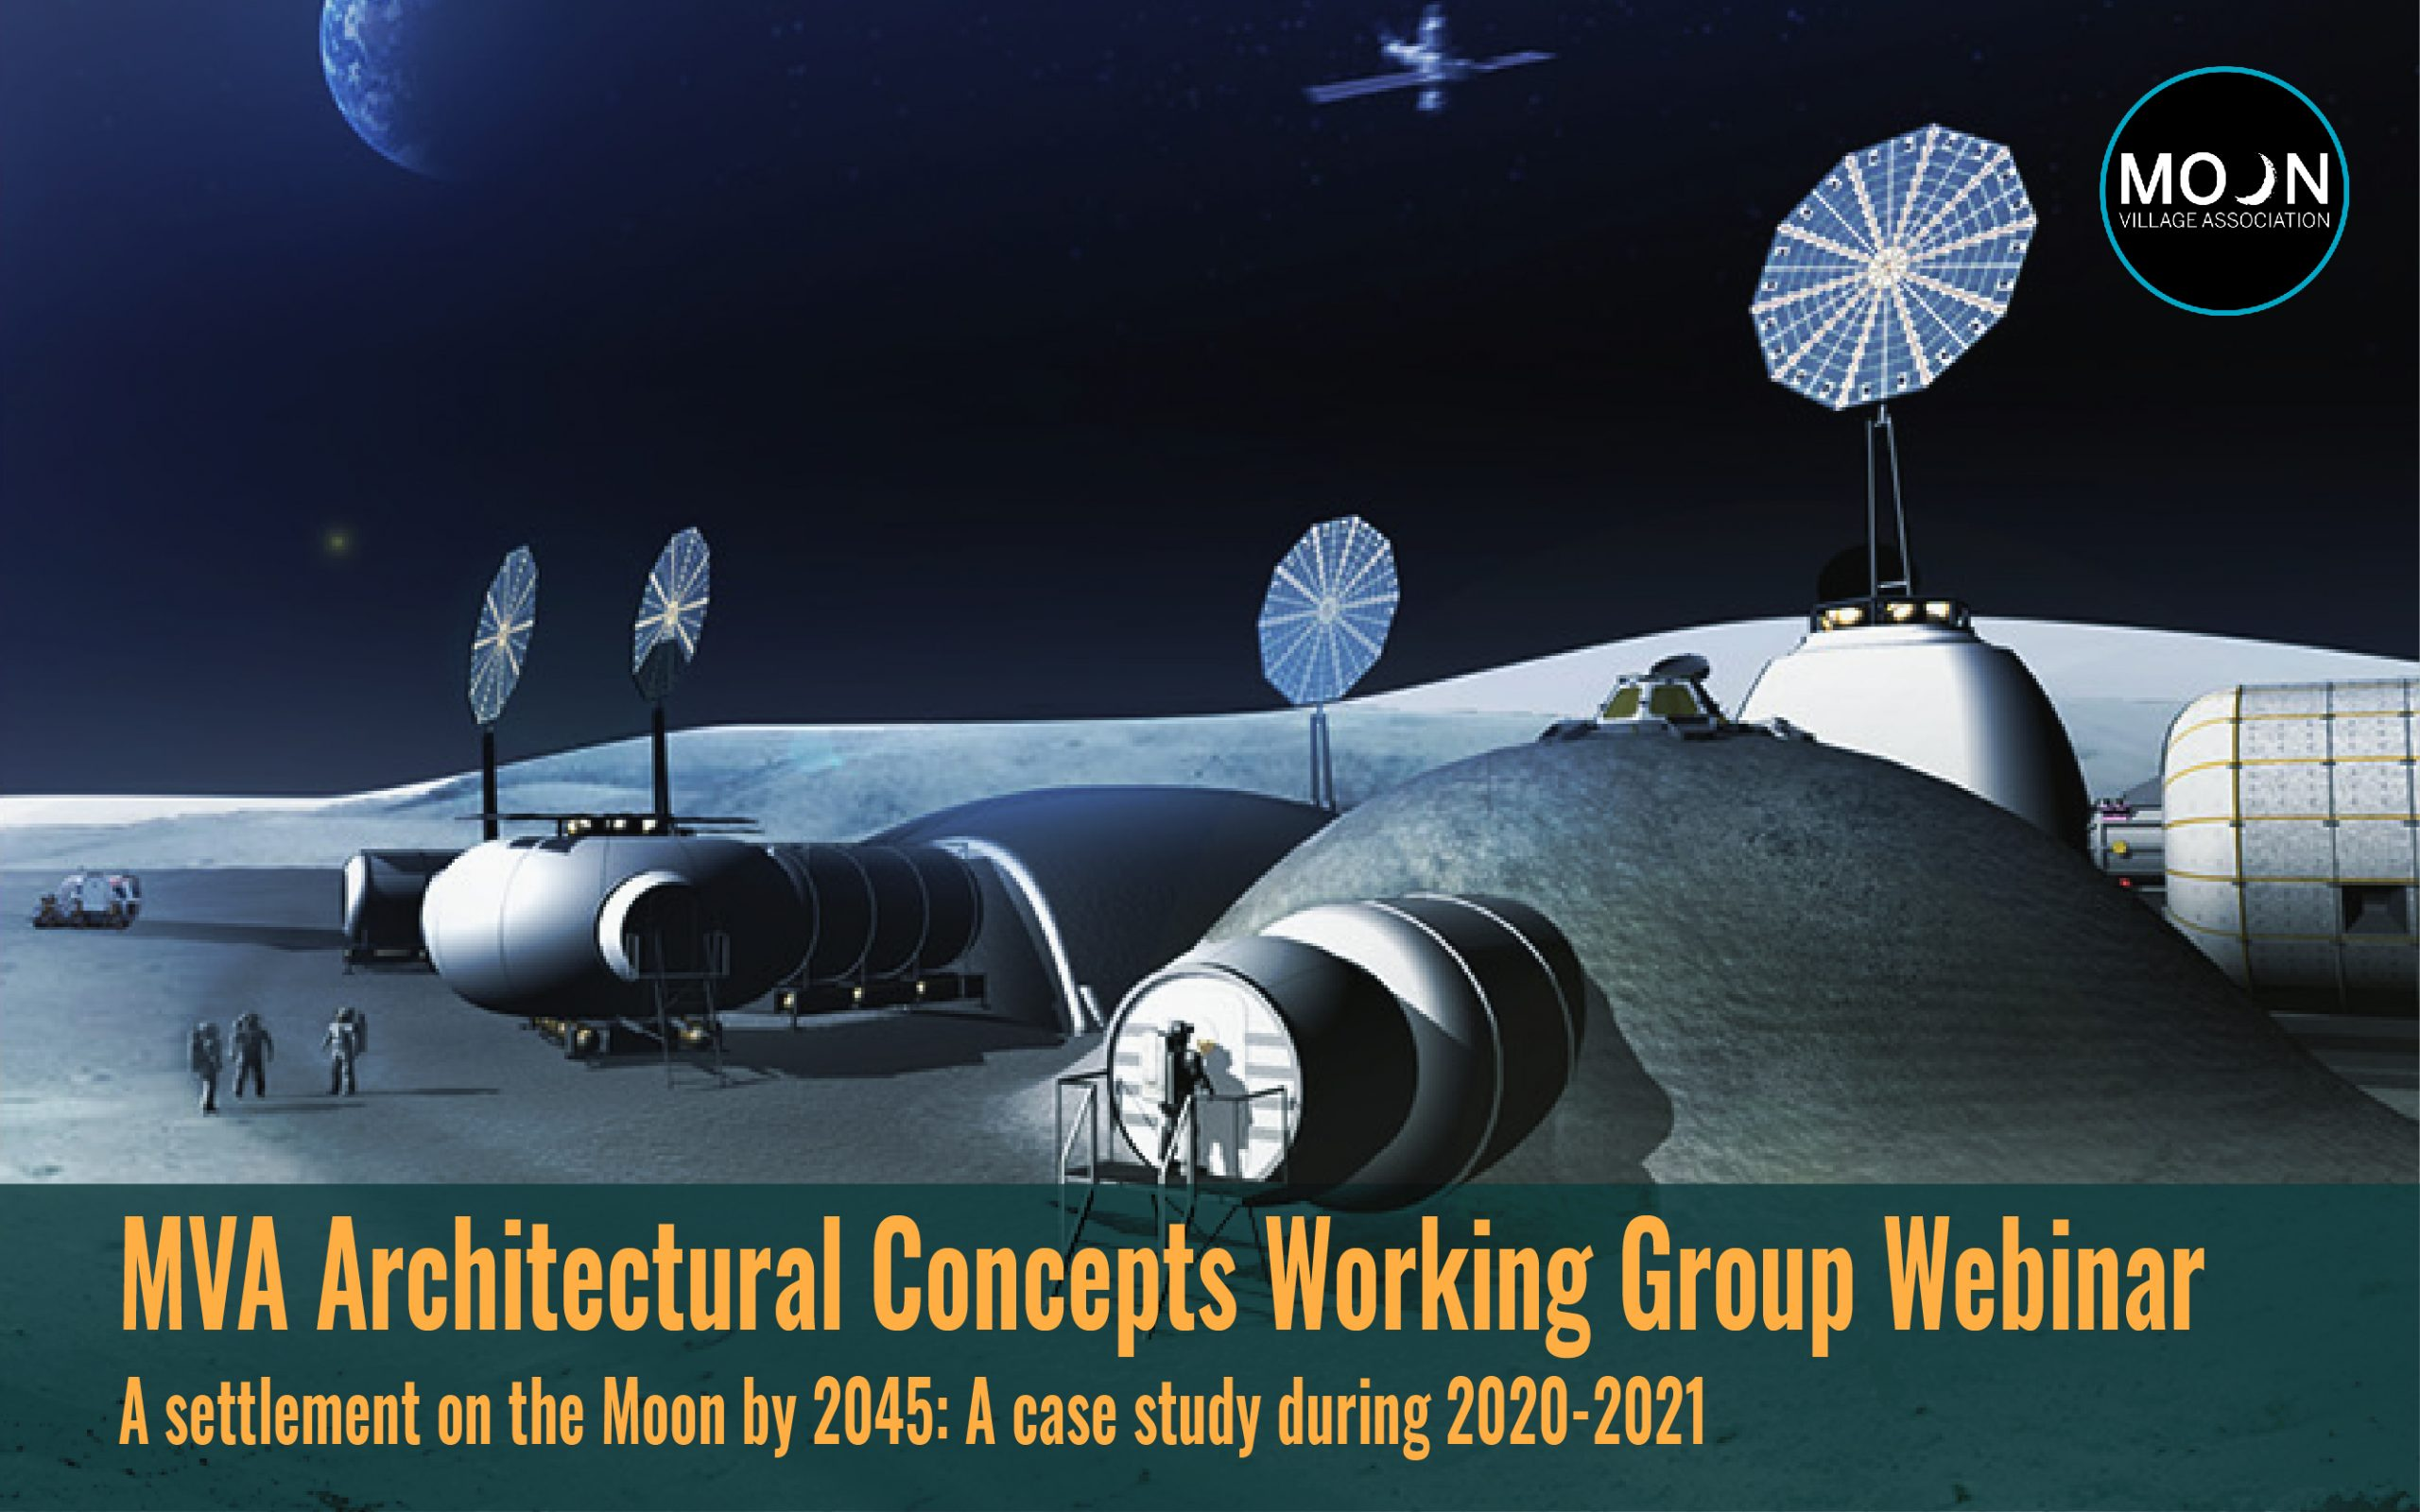 Webinar – MVA Architectural Concepts Working Group